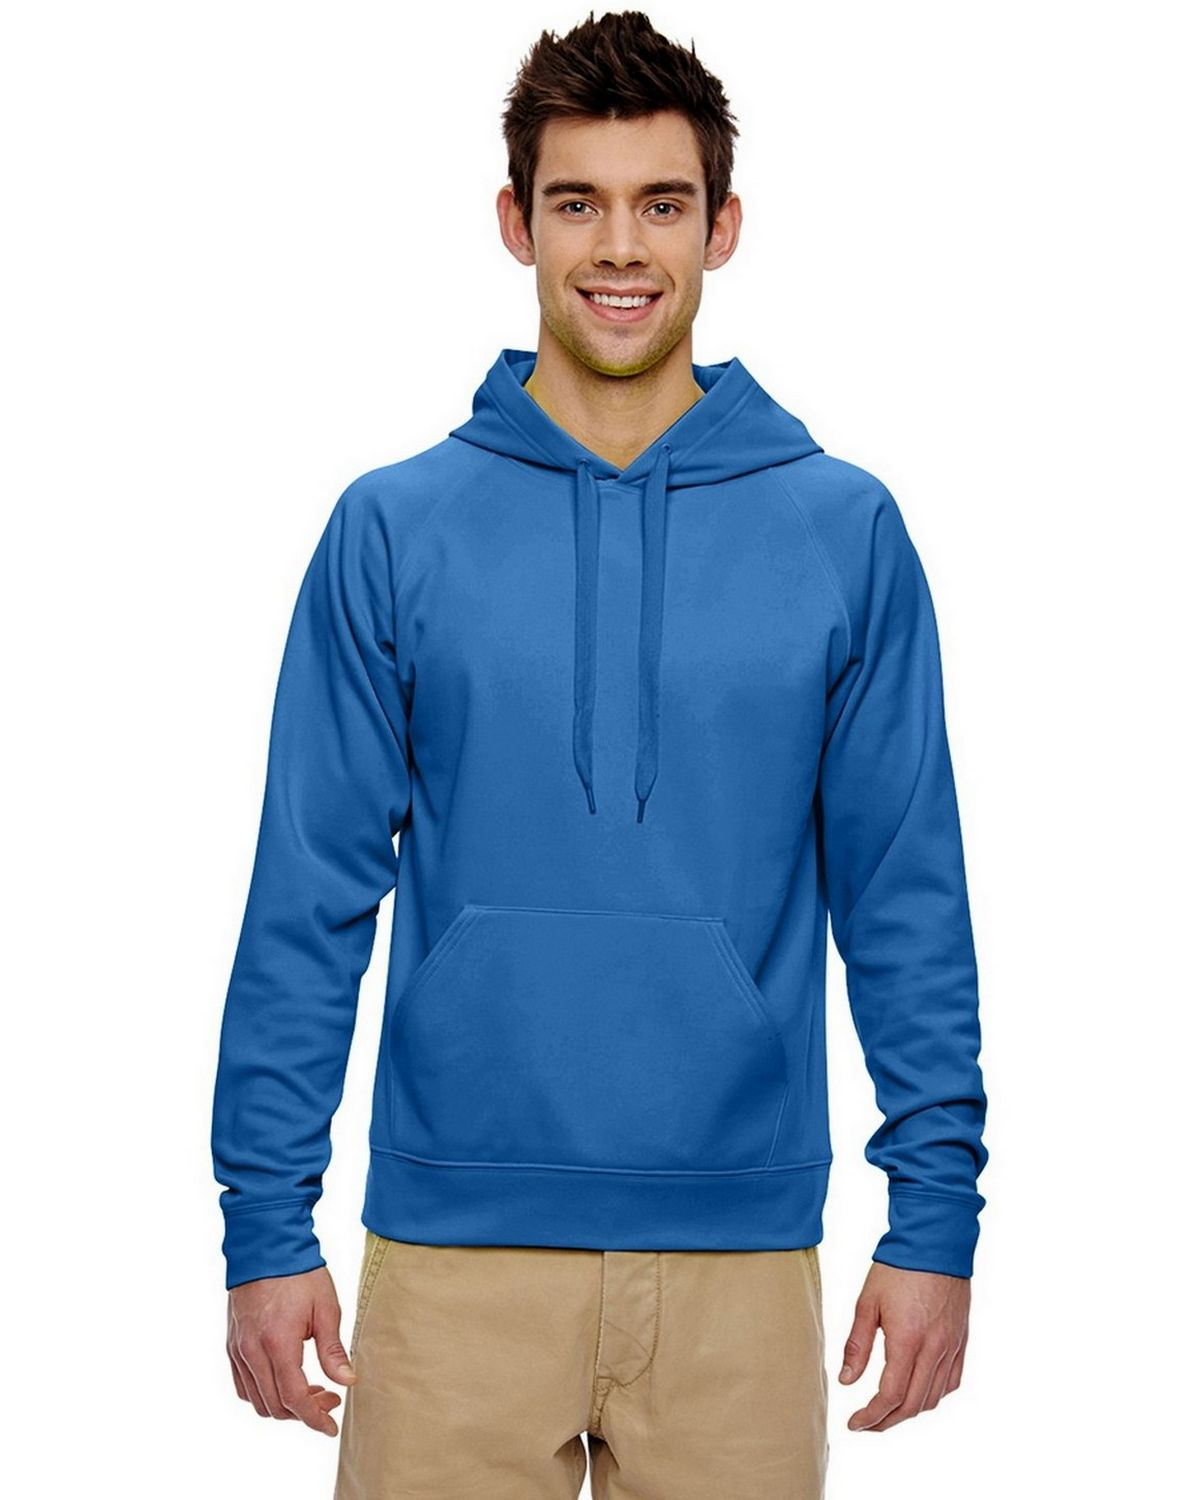 Jerzees PF96MR Pullover Hoodie - Royal - M PF96MR